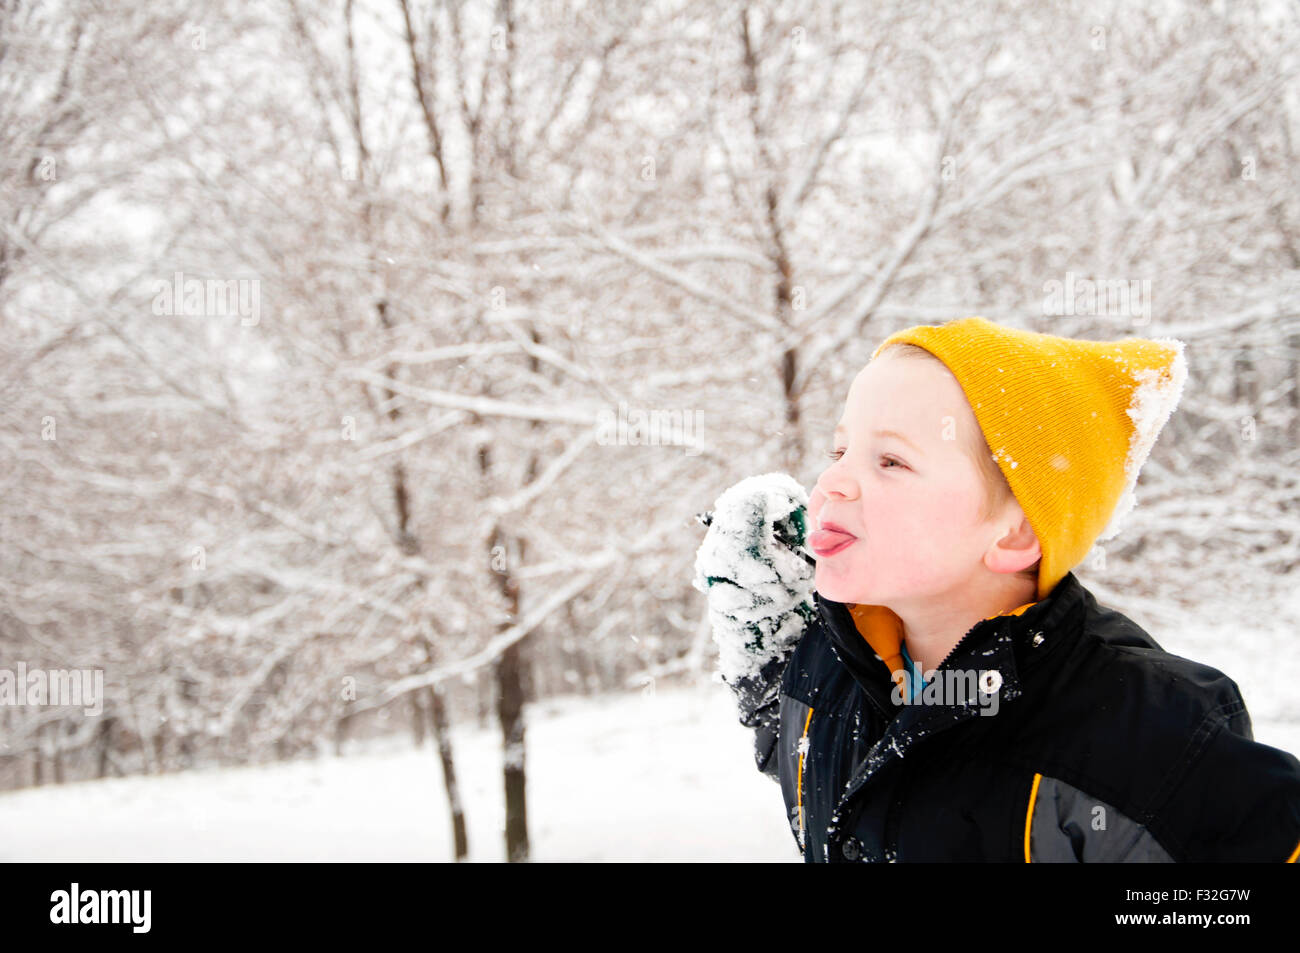 Boy sticking out tongue winter landscape - Stock Image